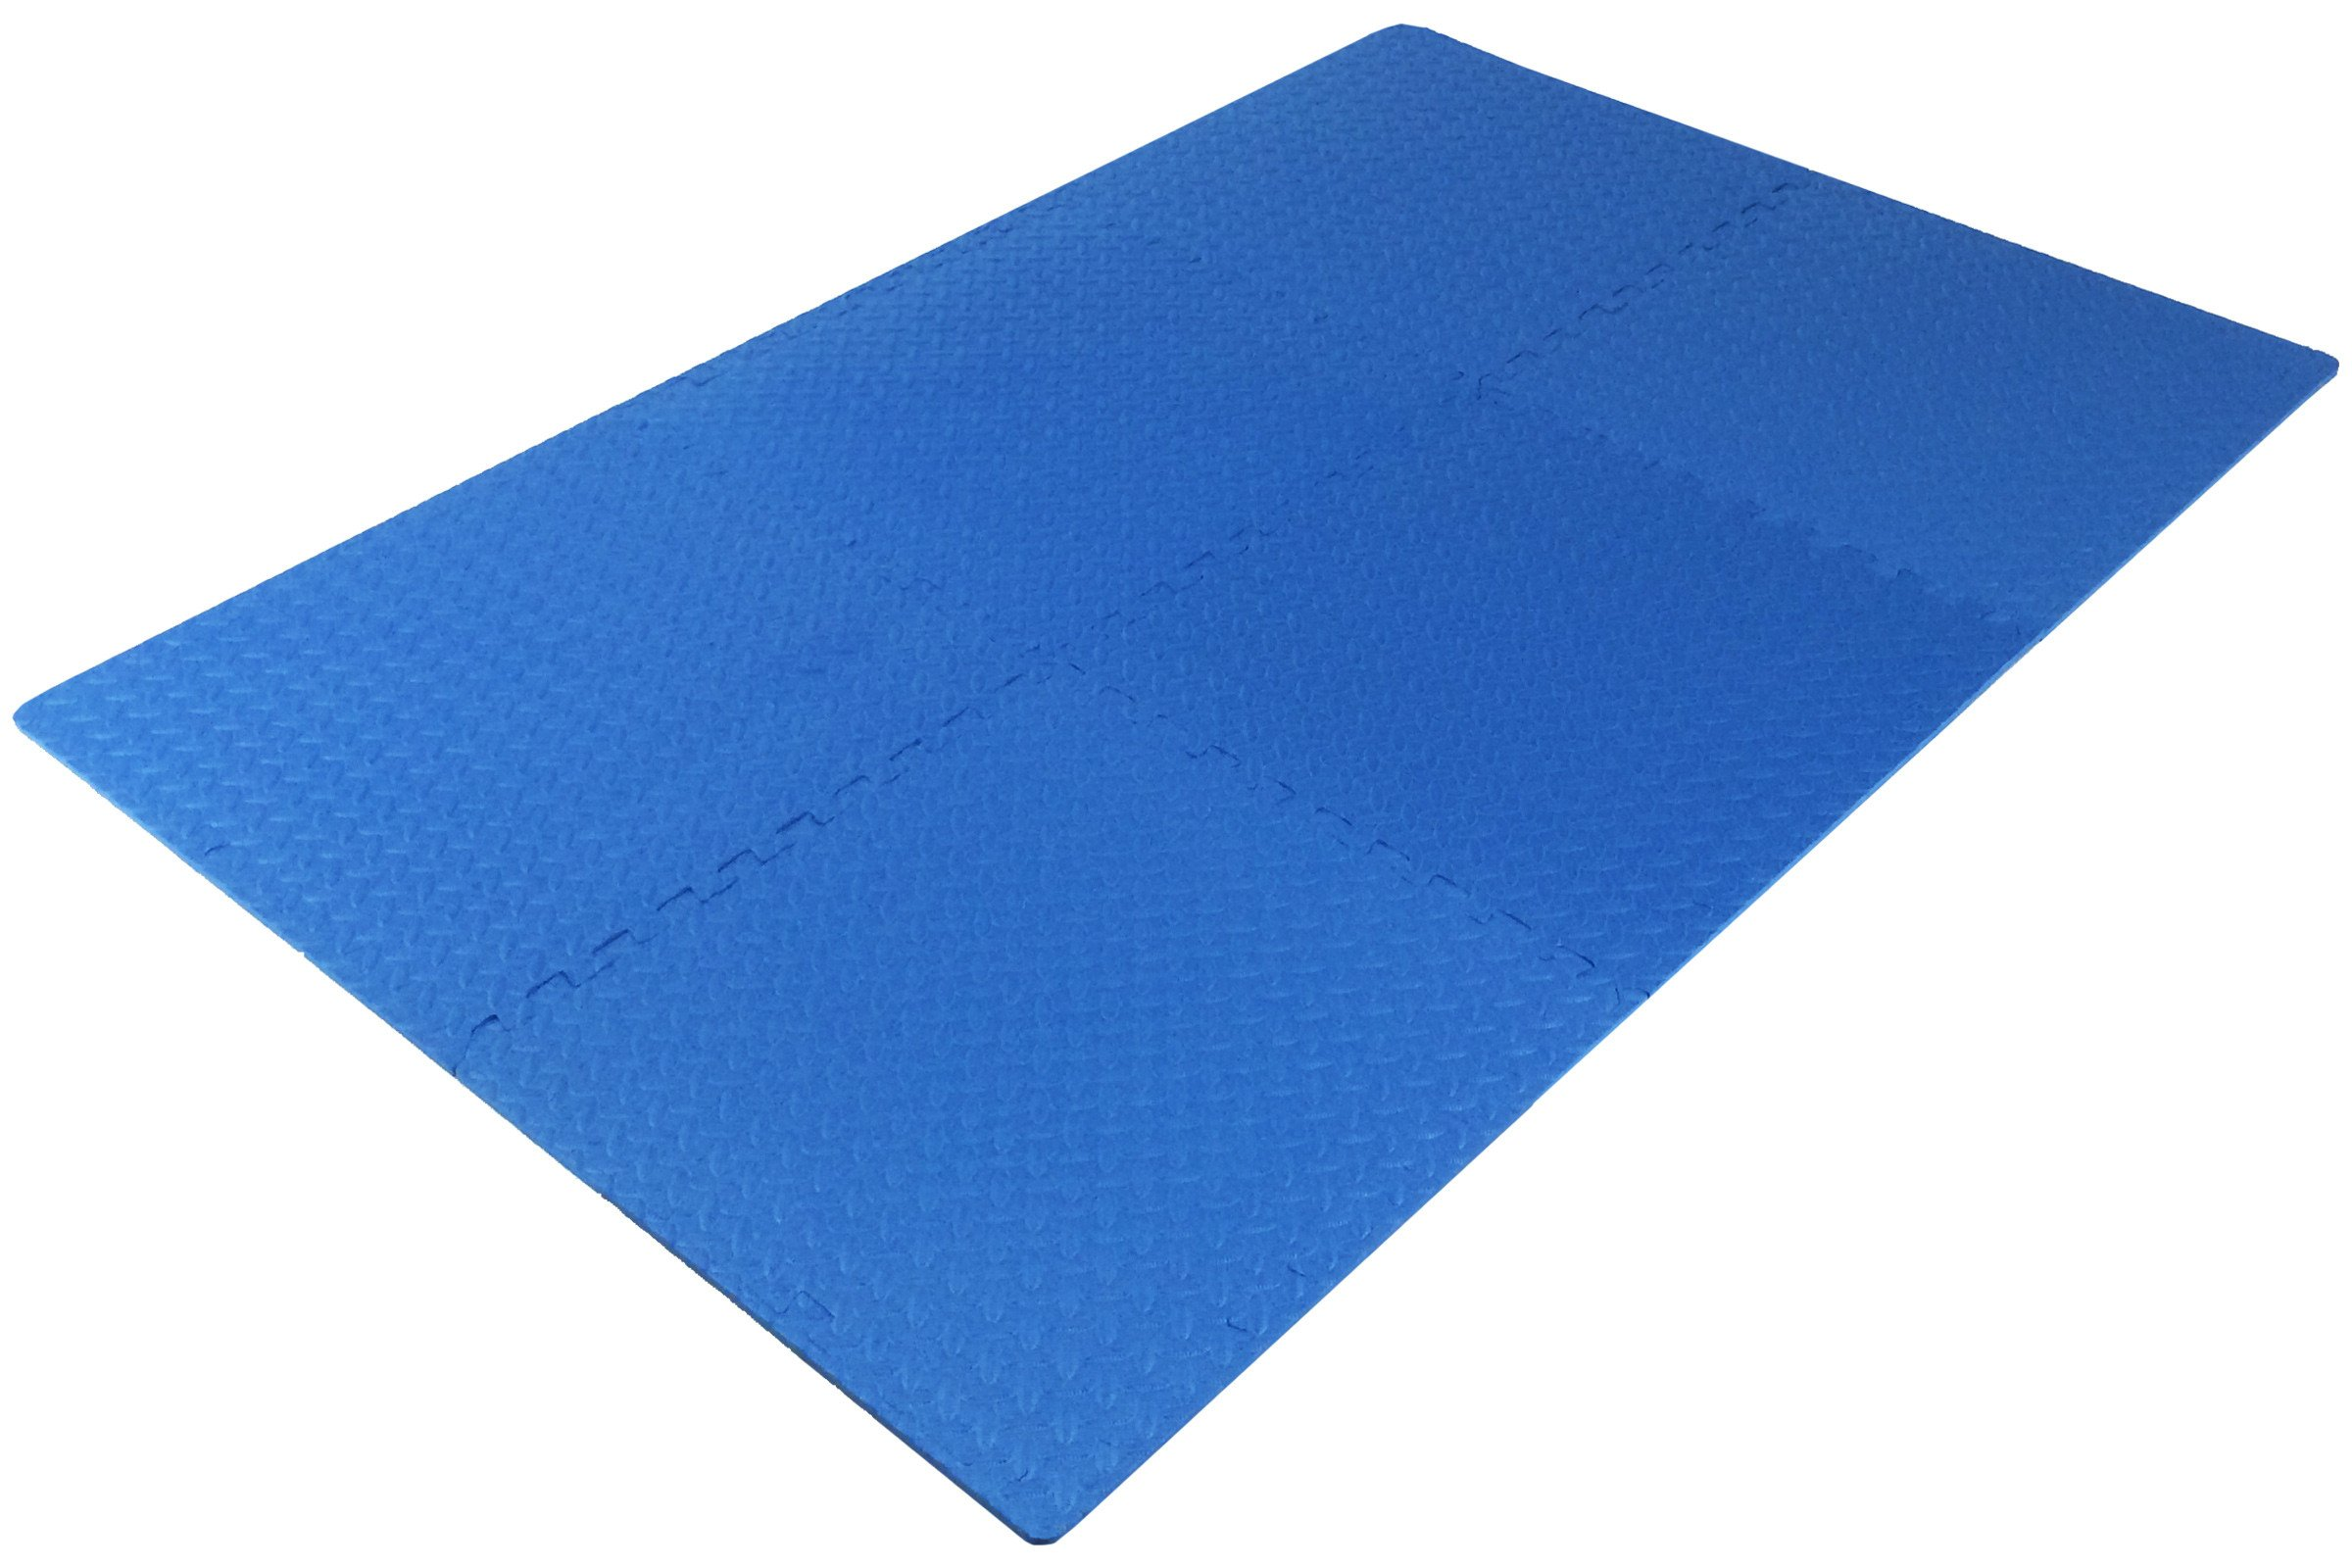 care fitness roll out exercise yoga excess products work collections personal in mat york purple workout direct mats